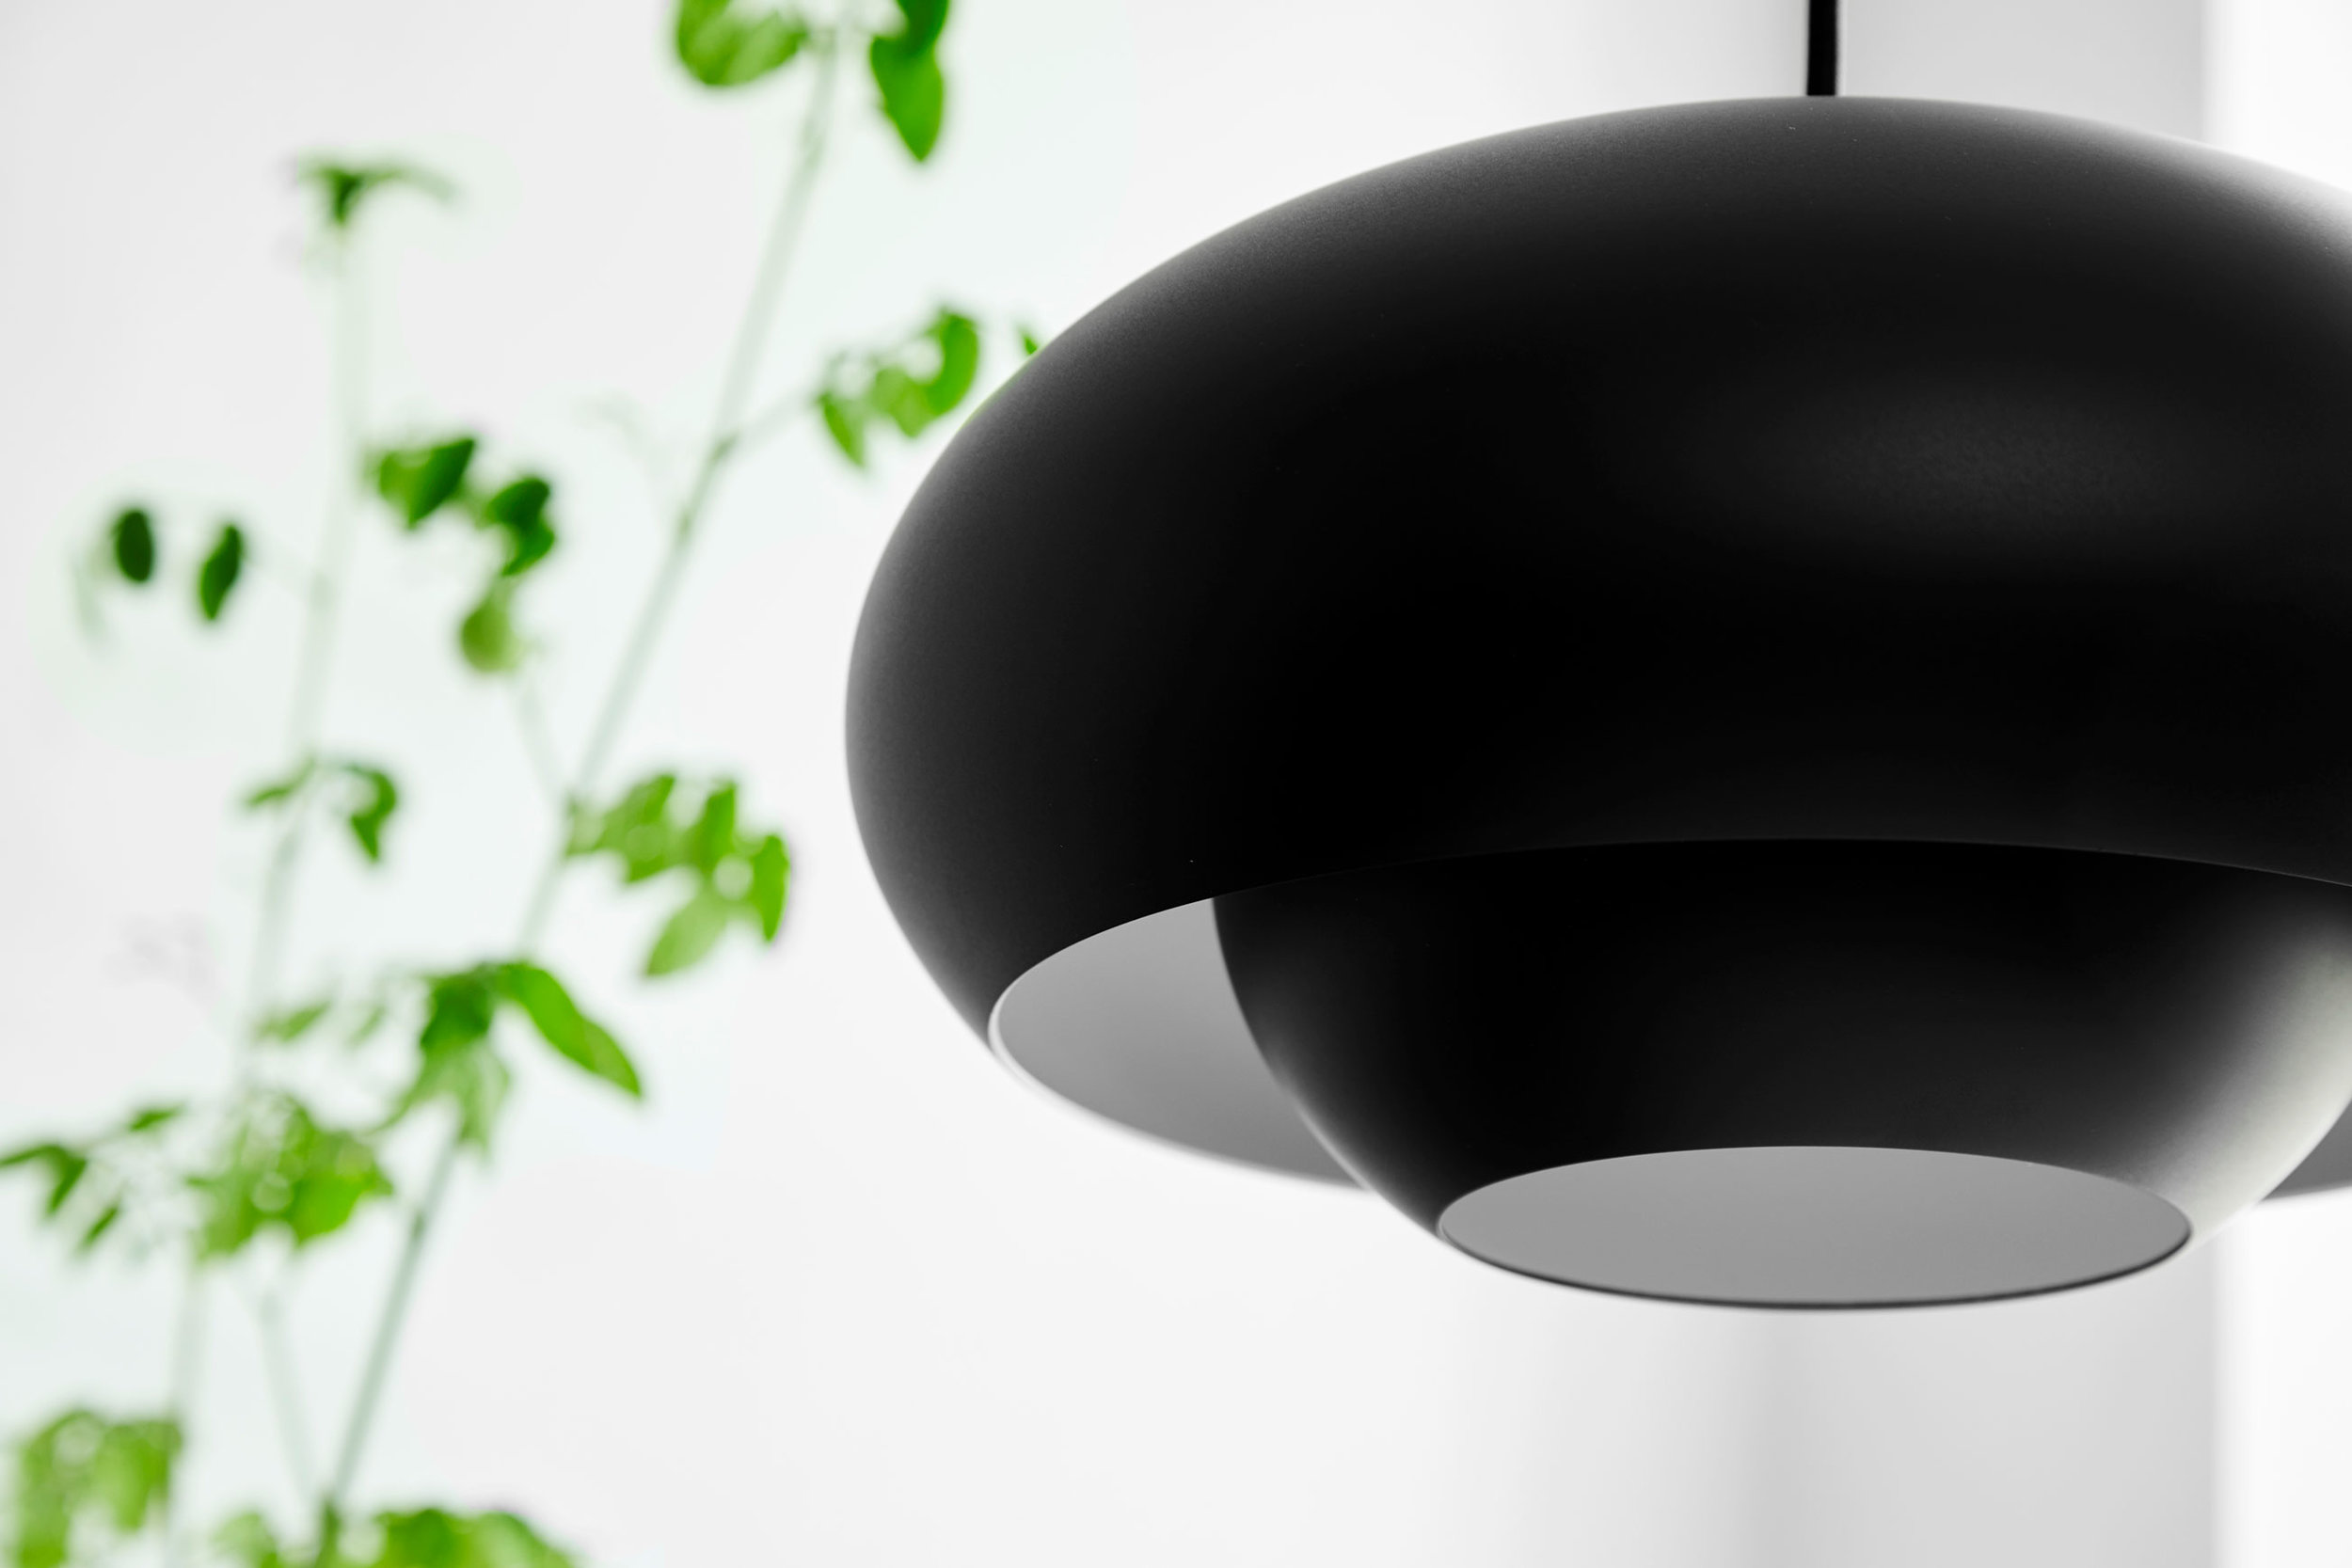 Champ-pendant-black-matt---Lifestyle-Close-up-Obdrupgaard-1575.jpg